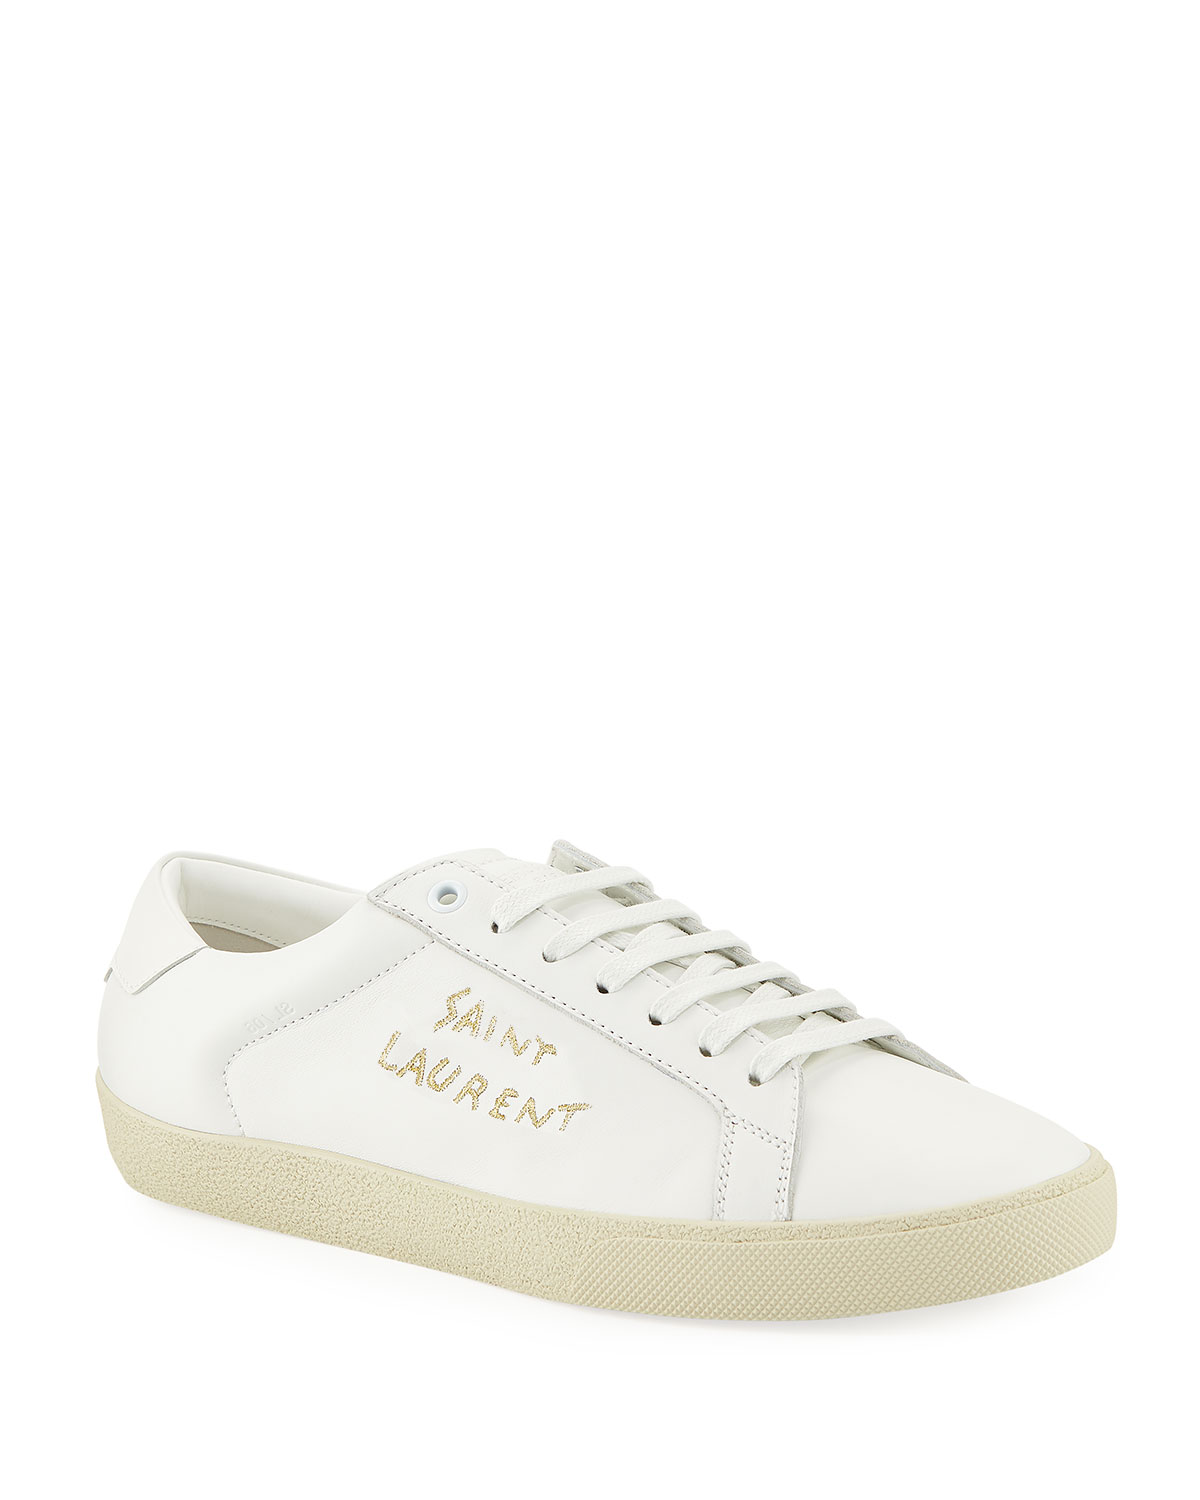 752609306eb3 Saint LaurentMen s Court Classic Logo-Stitching Leather Low-Top Sneakers